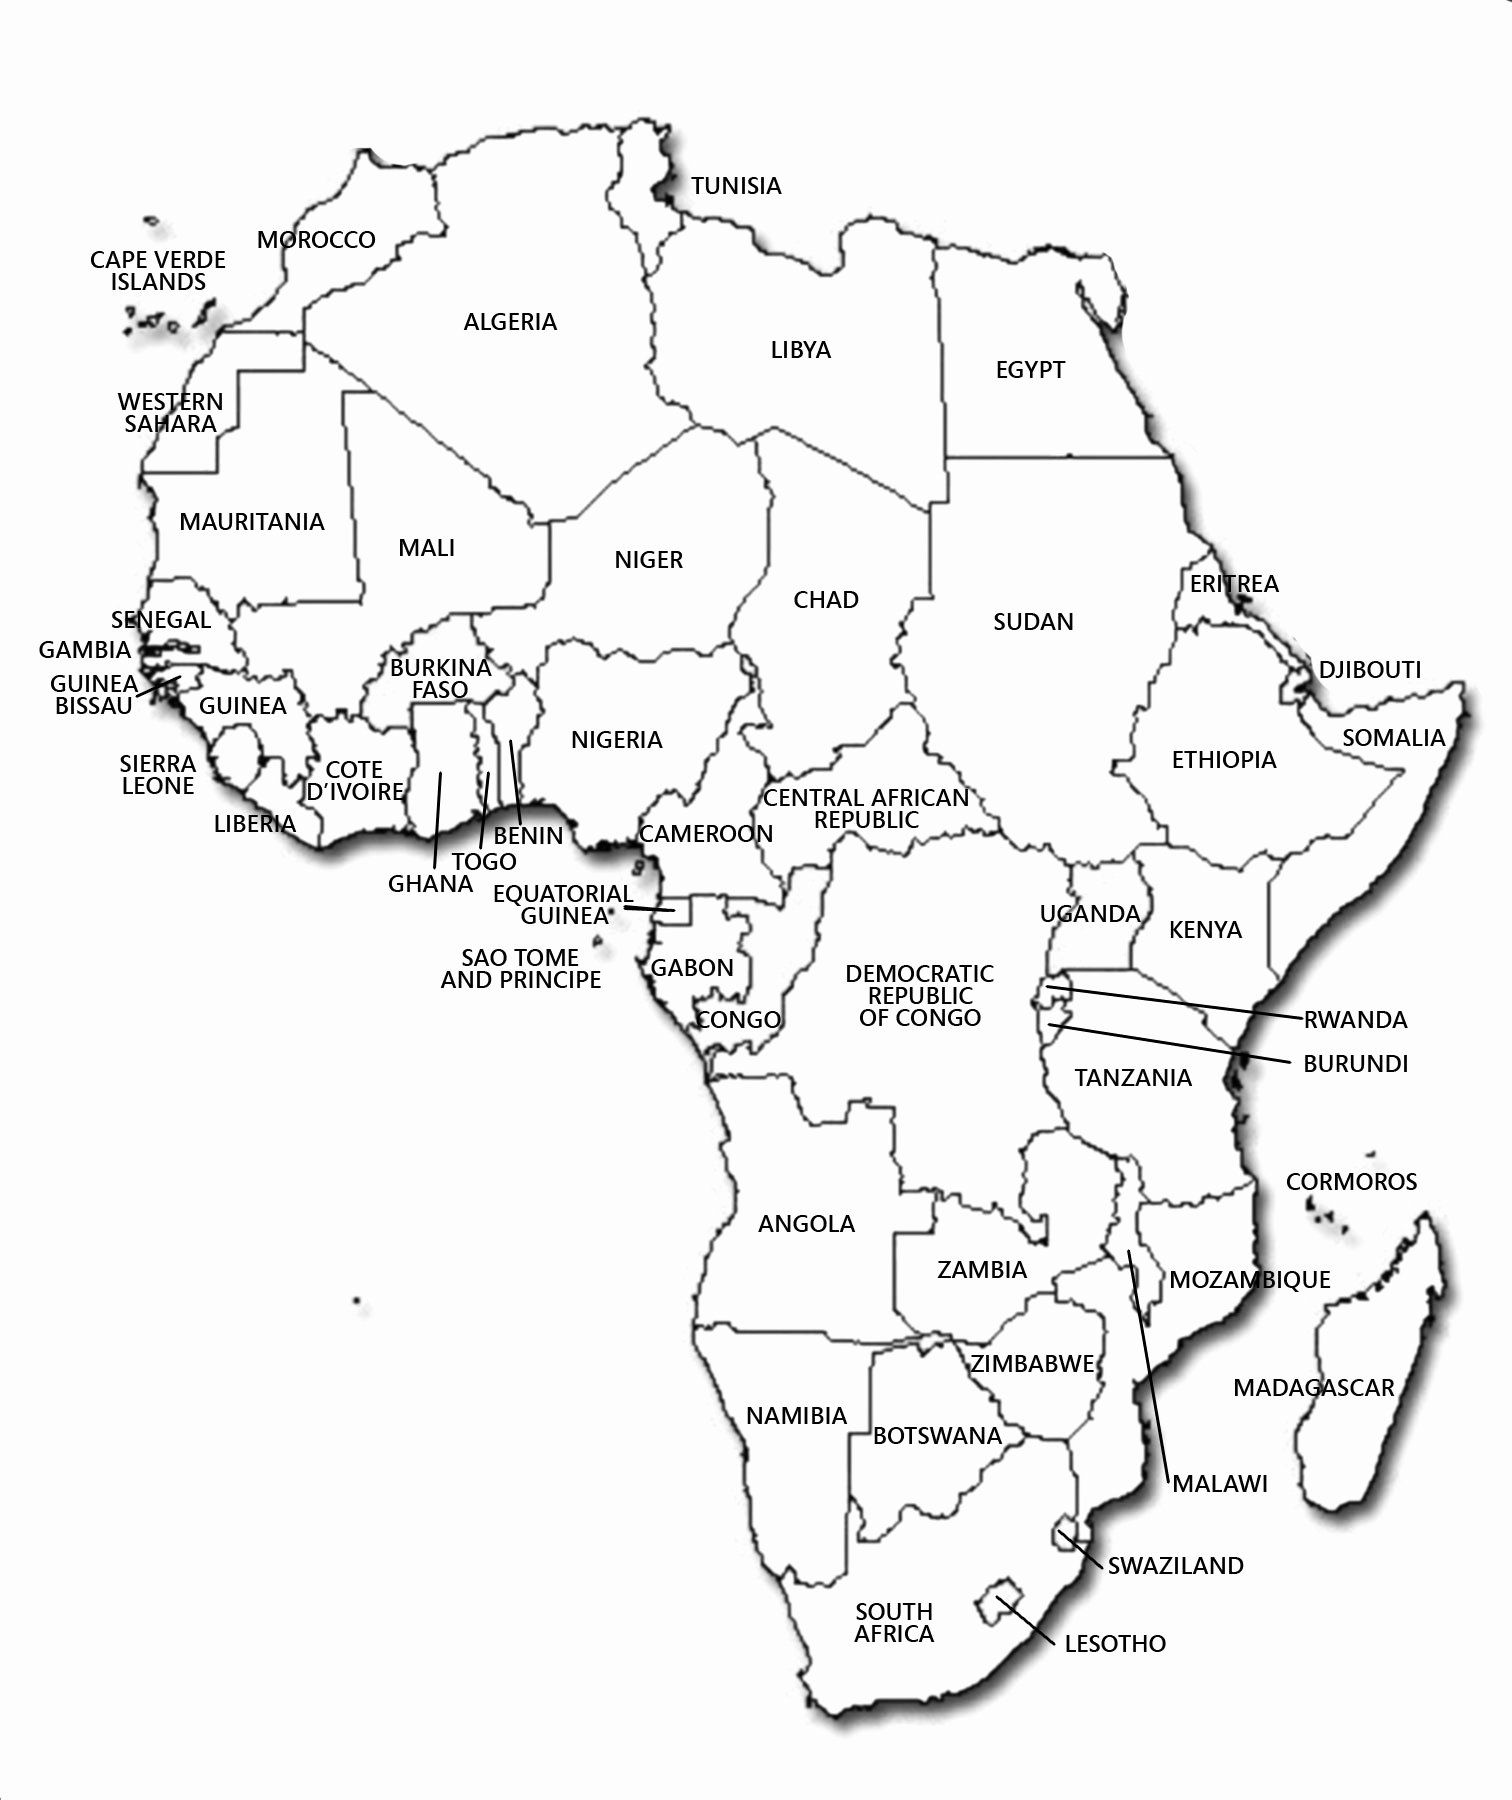 African Countries Coloring Page Inspirational Africa Lessons Tes Teach World Map Africa Africa Map Political Map